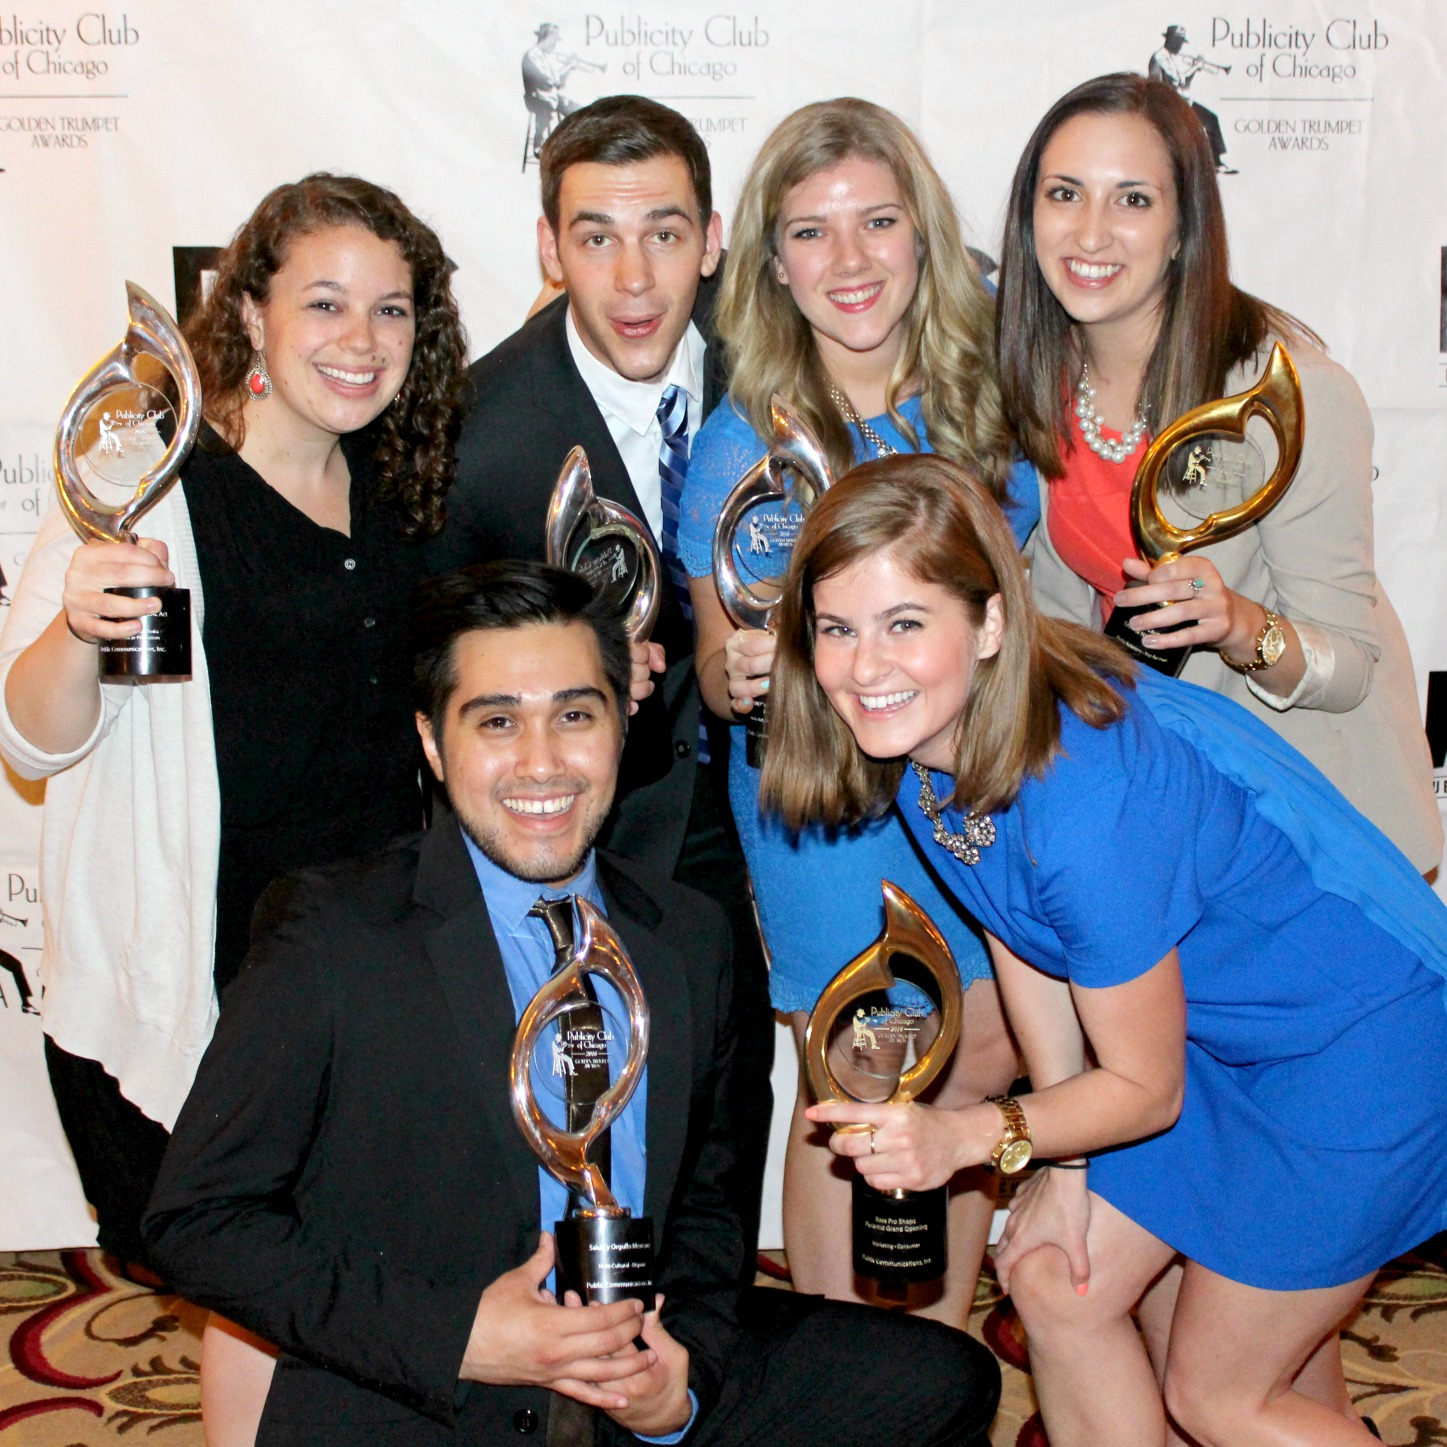 Publicity Club of Chicago Golden Trumpet Awards